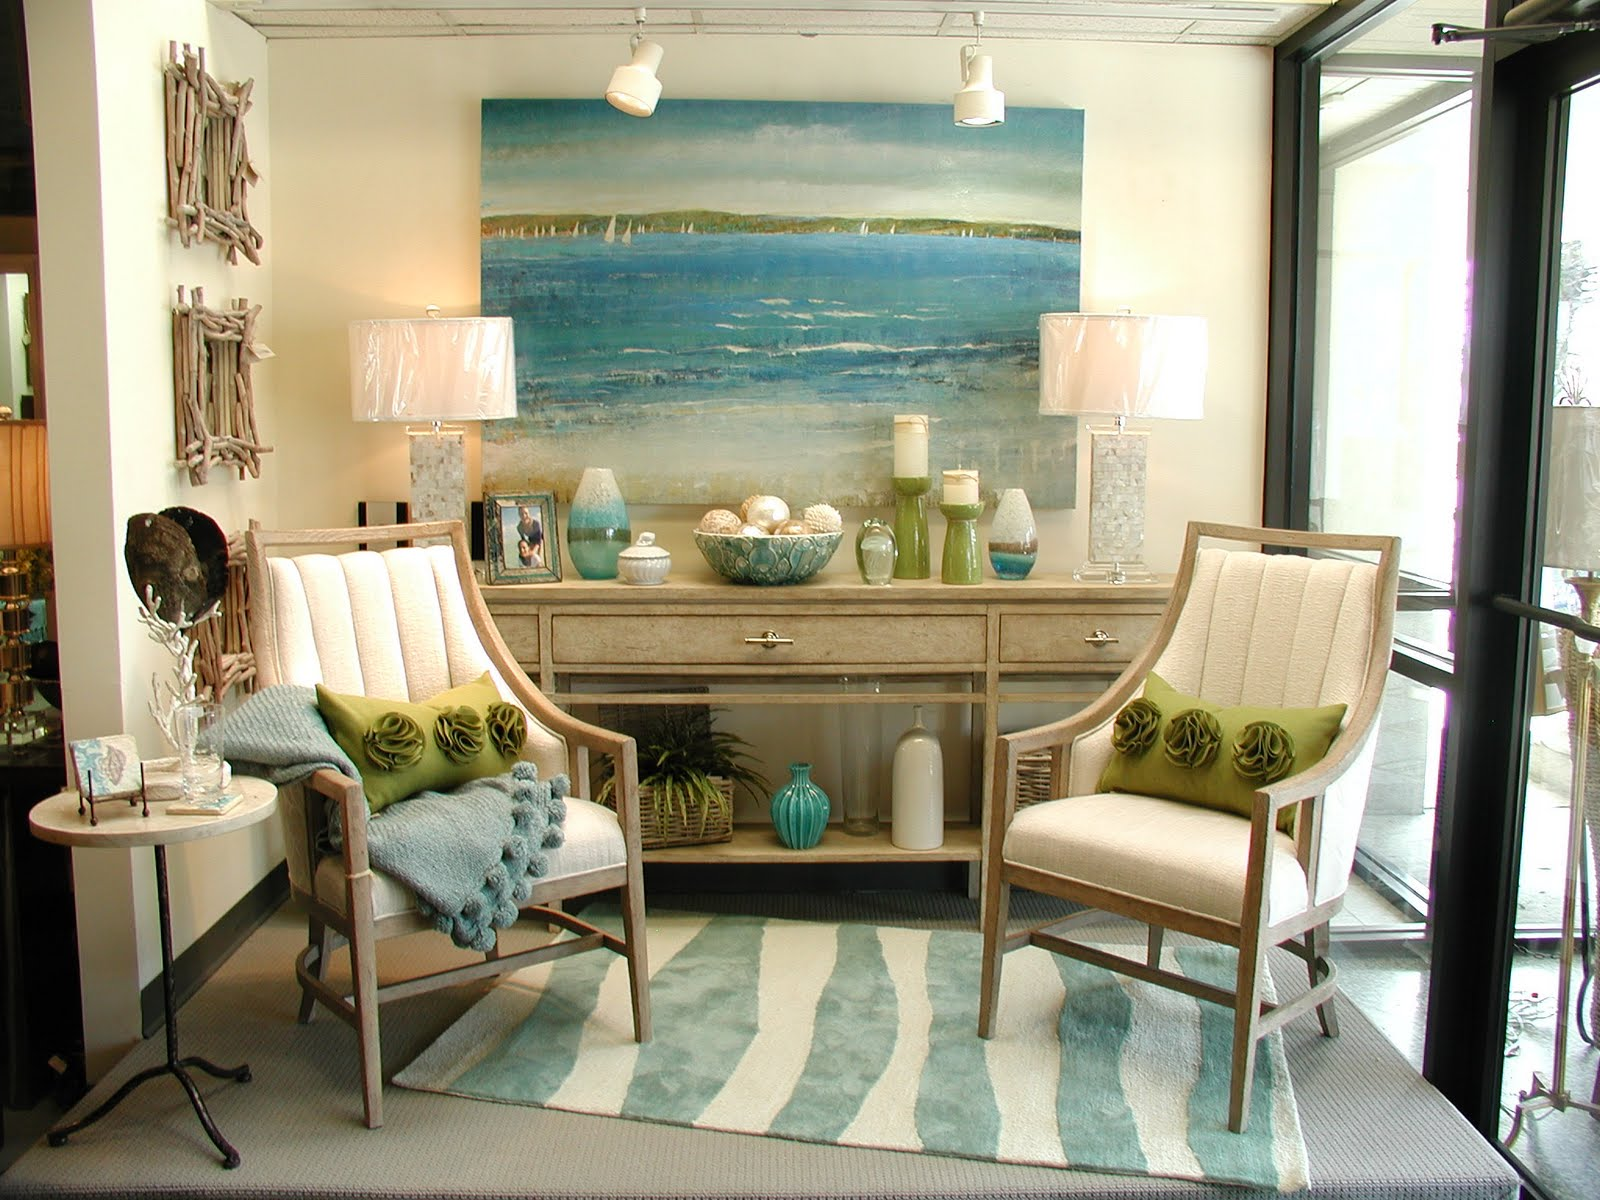 Details of design interior design in annapolis this summer for The interior designer